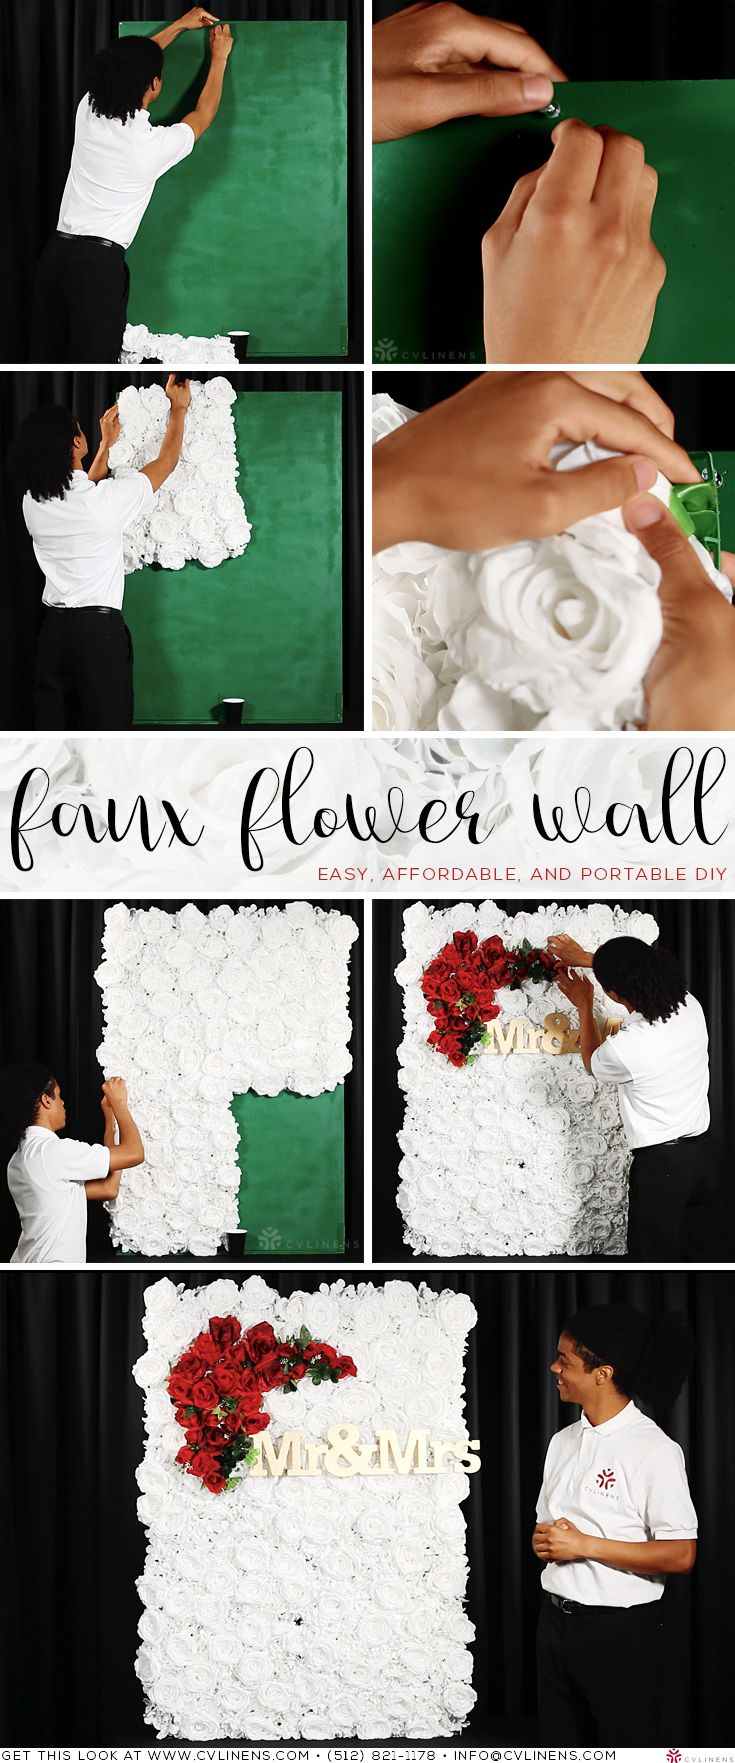 Wedding decoration ideas backdrops  How to Set Up a Portable Flower Wall Backdrop  DIY Wedding